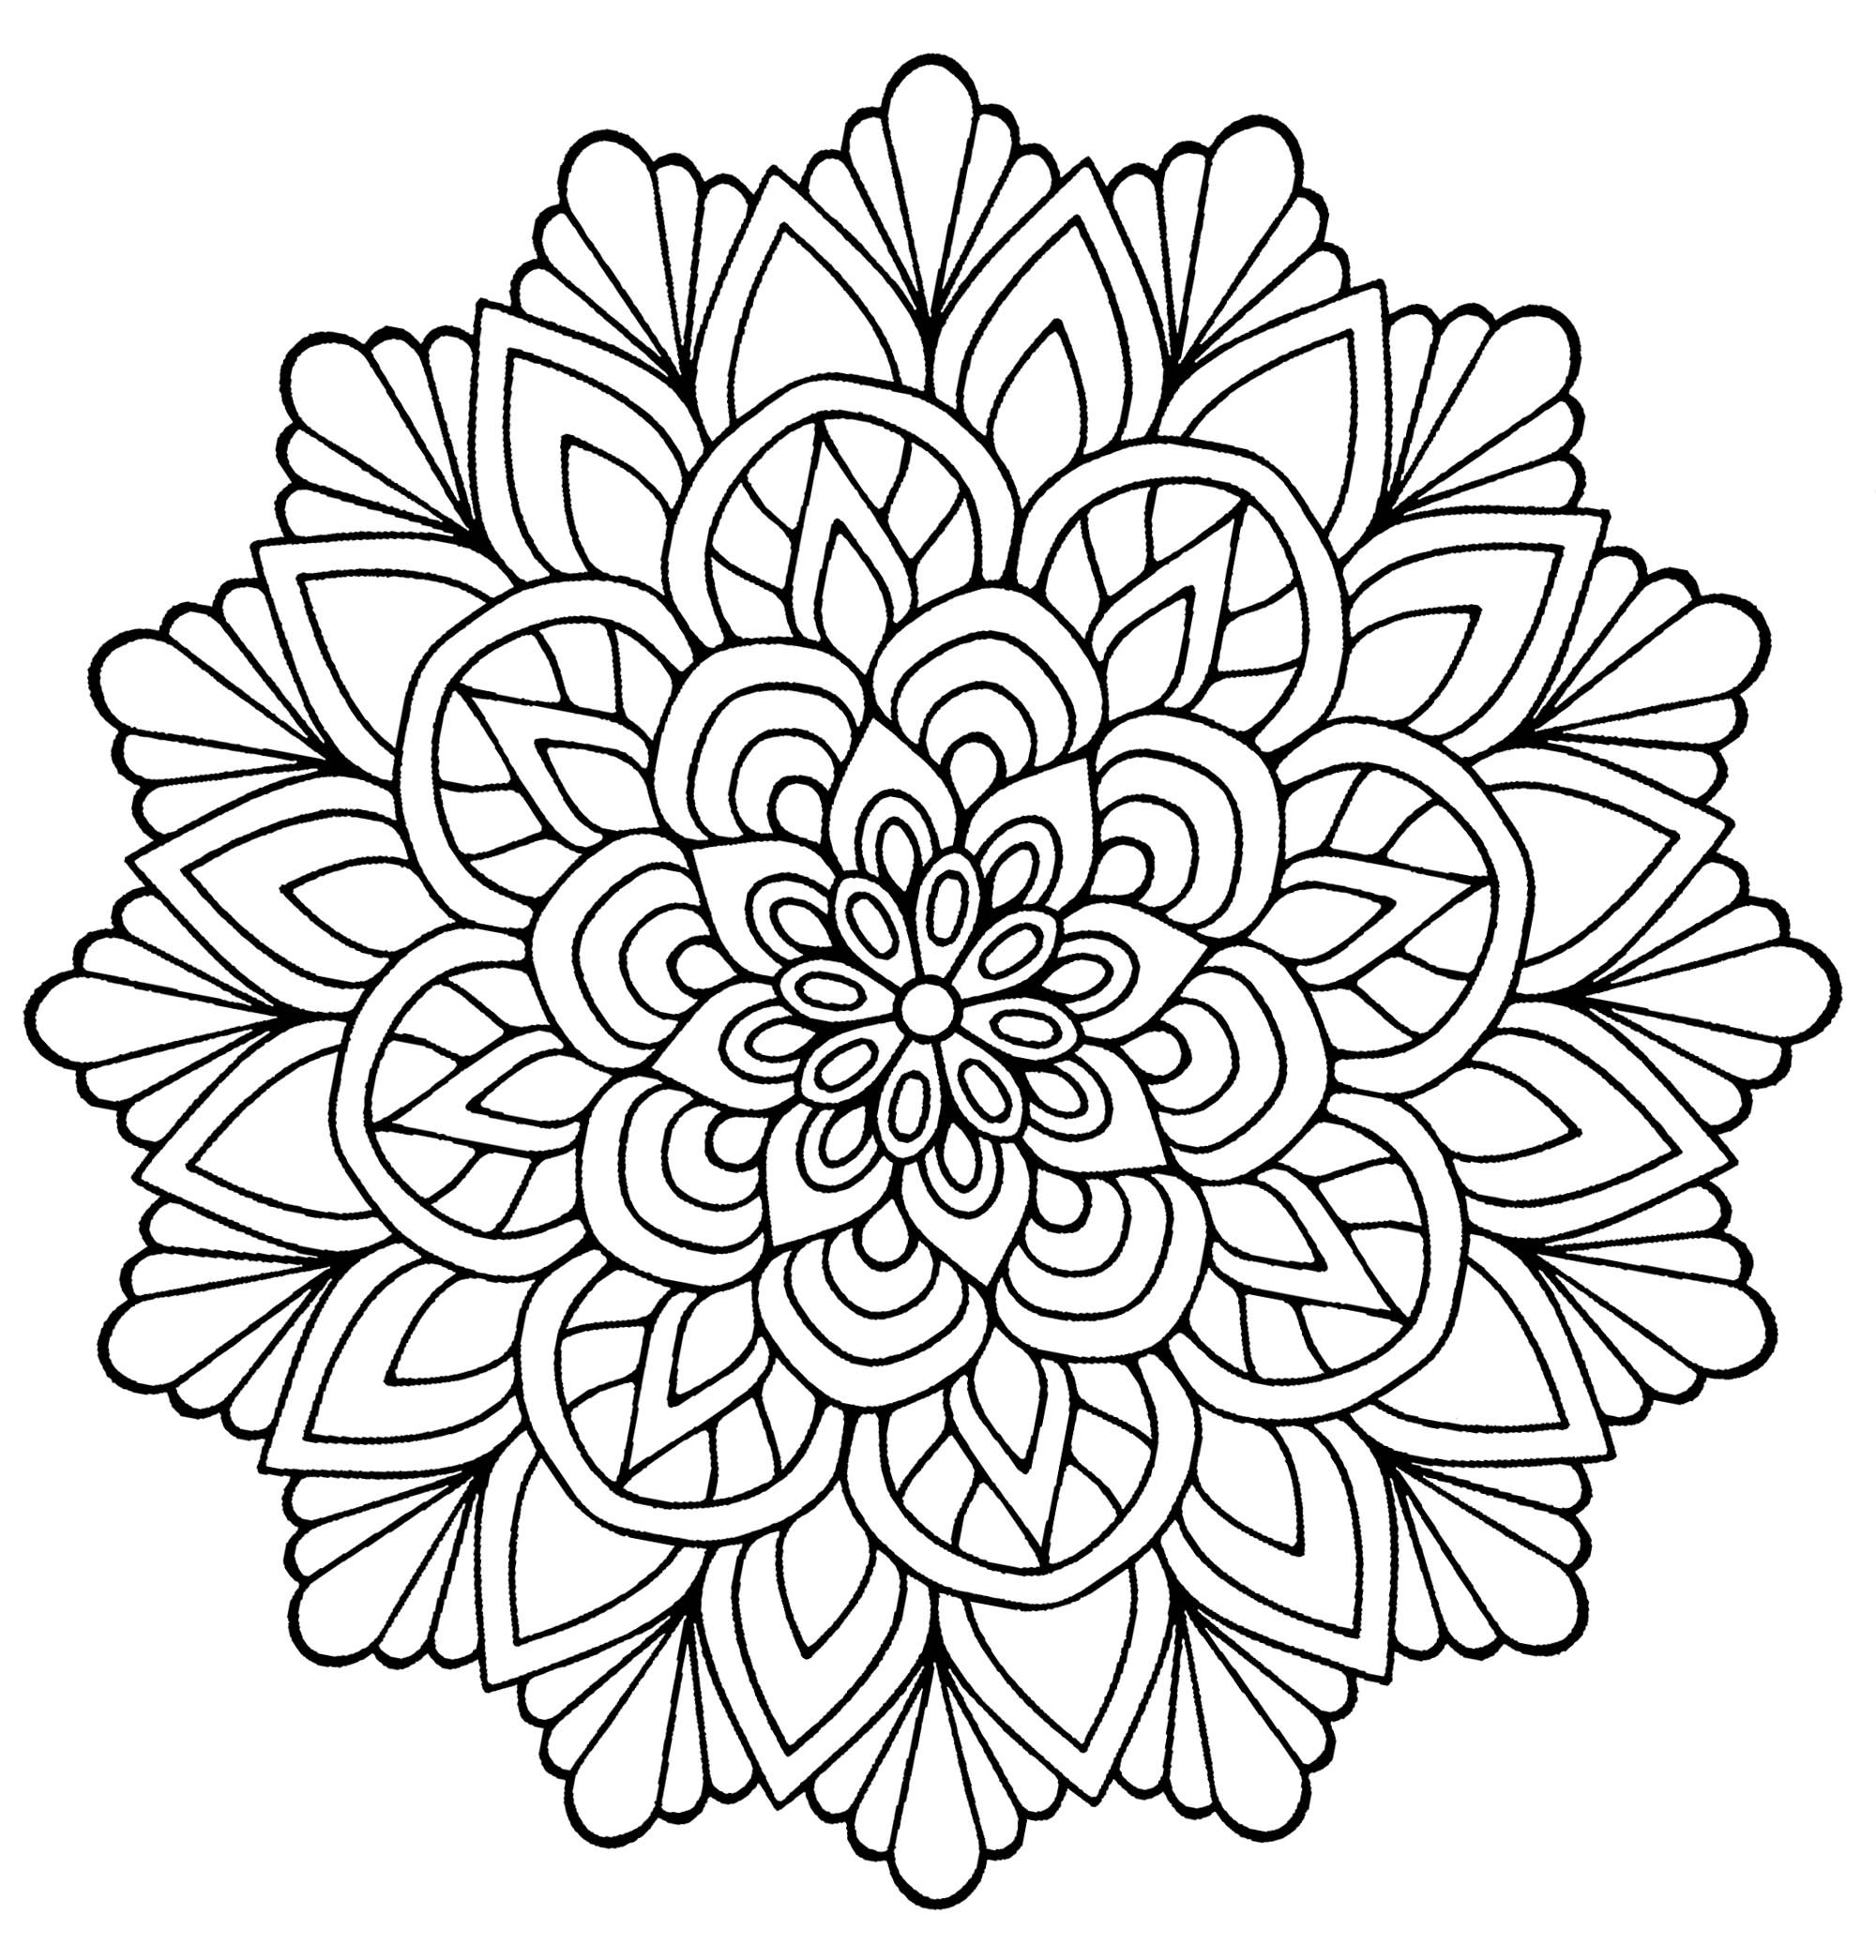 Simple Adult Coloring Pages  Mandala easy flower with leaves Simple Mandalas